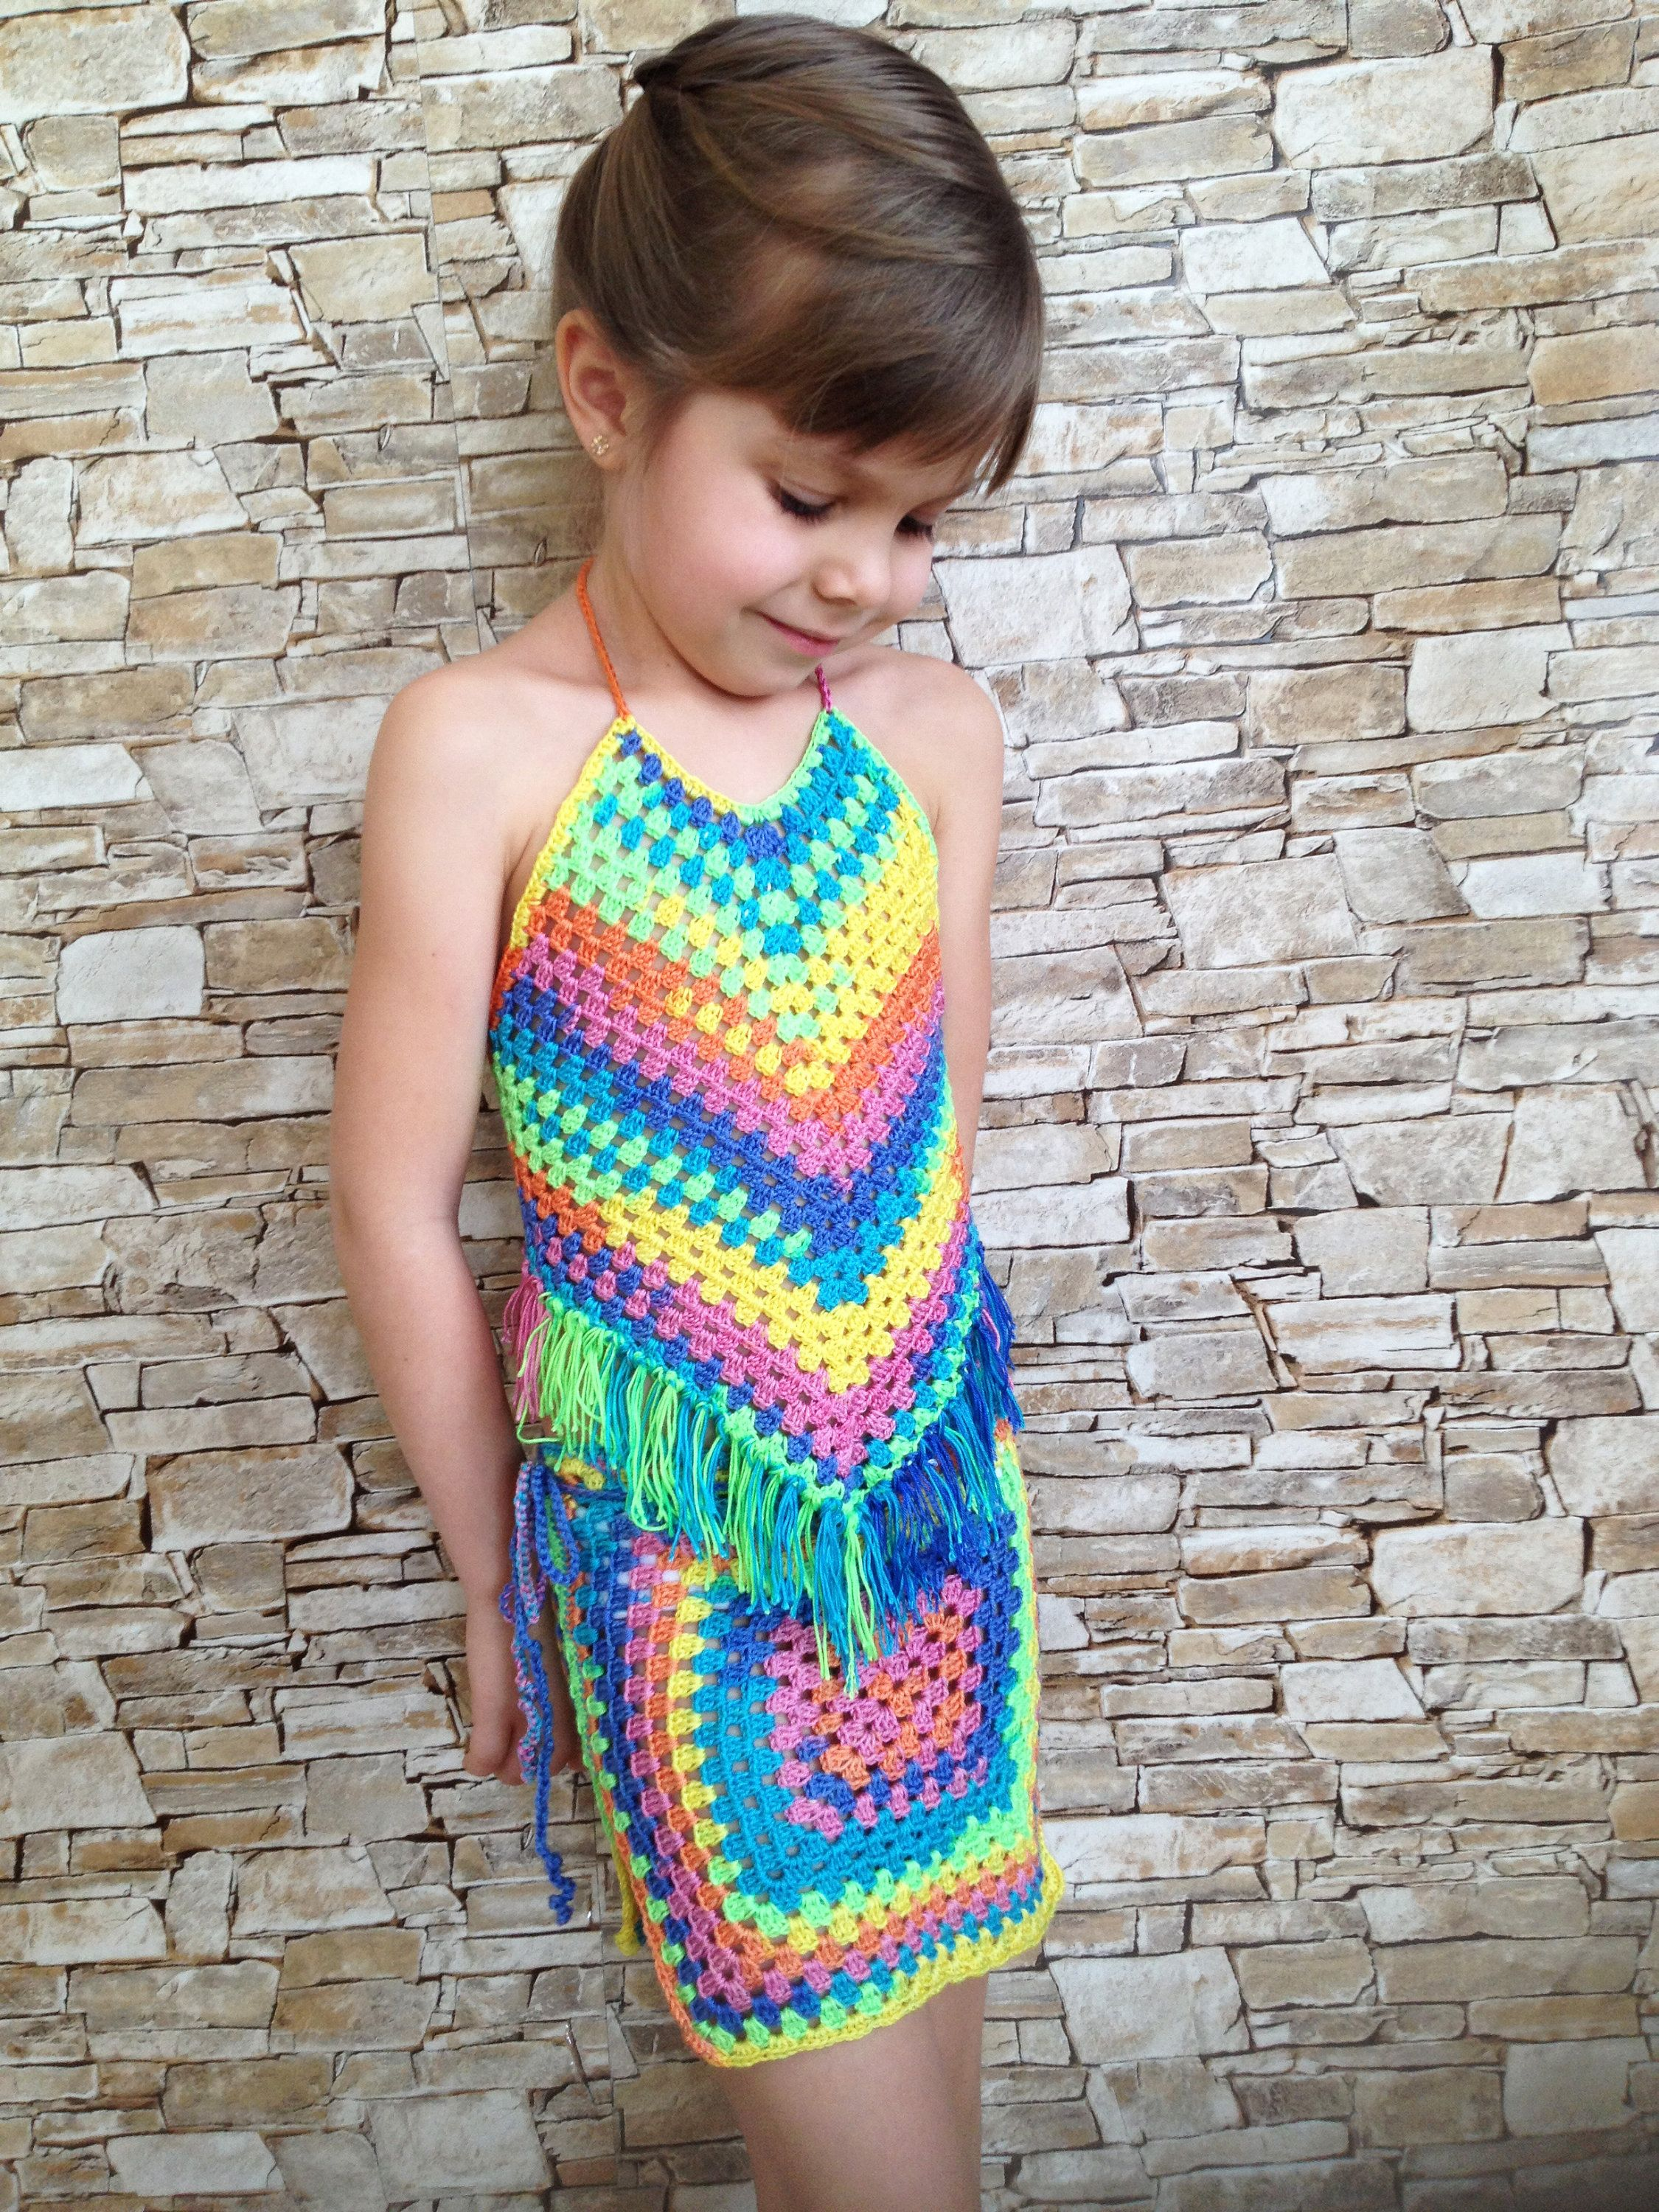 Crochet toddler set top and skirt Rainbow granny square wrap skirt Open back fringe top Beach clothing childrens Colorful crochet outfit #beachvacationclothes